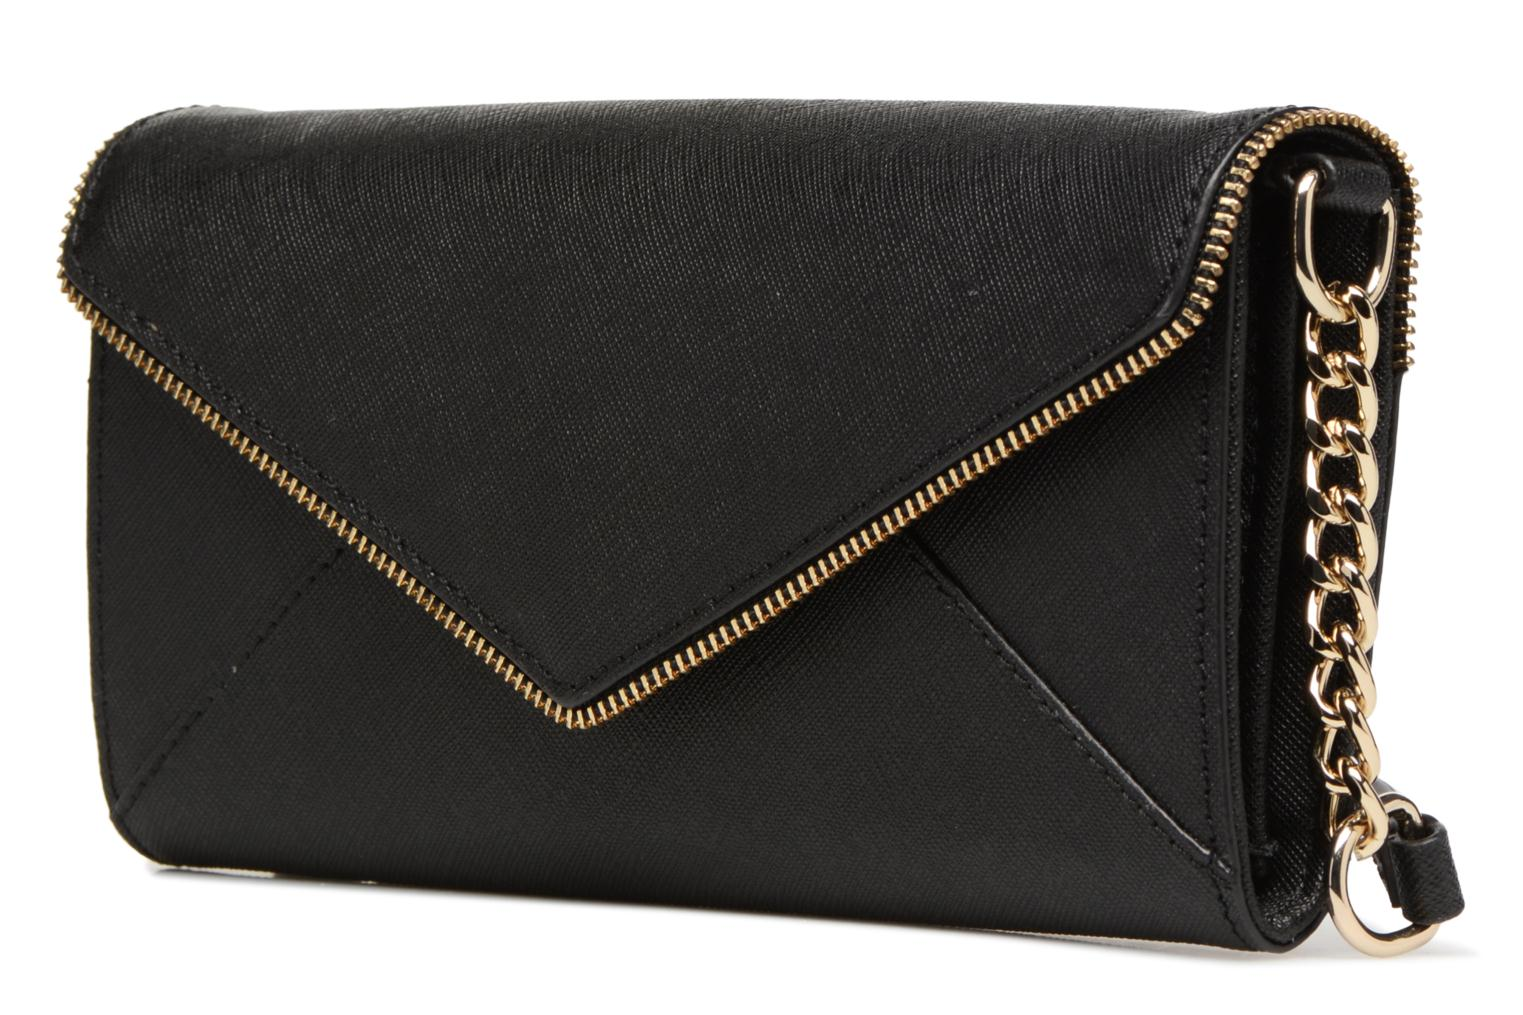 ACCESSORIES LEATHER SH15ISSX13 CLEO WALLET CHAI Black